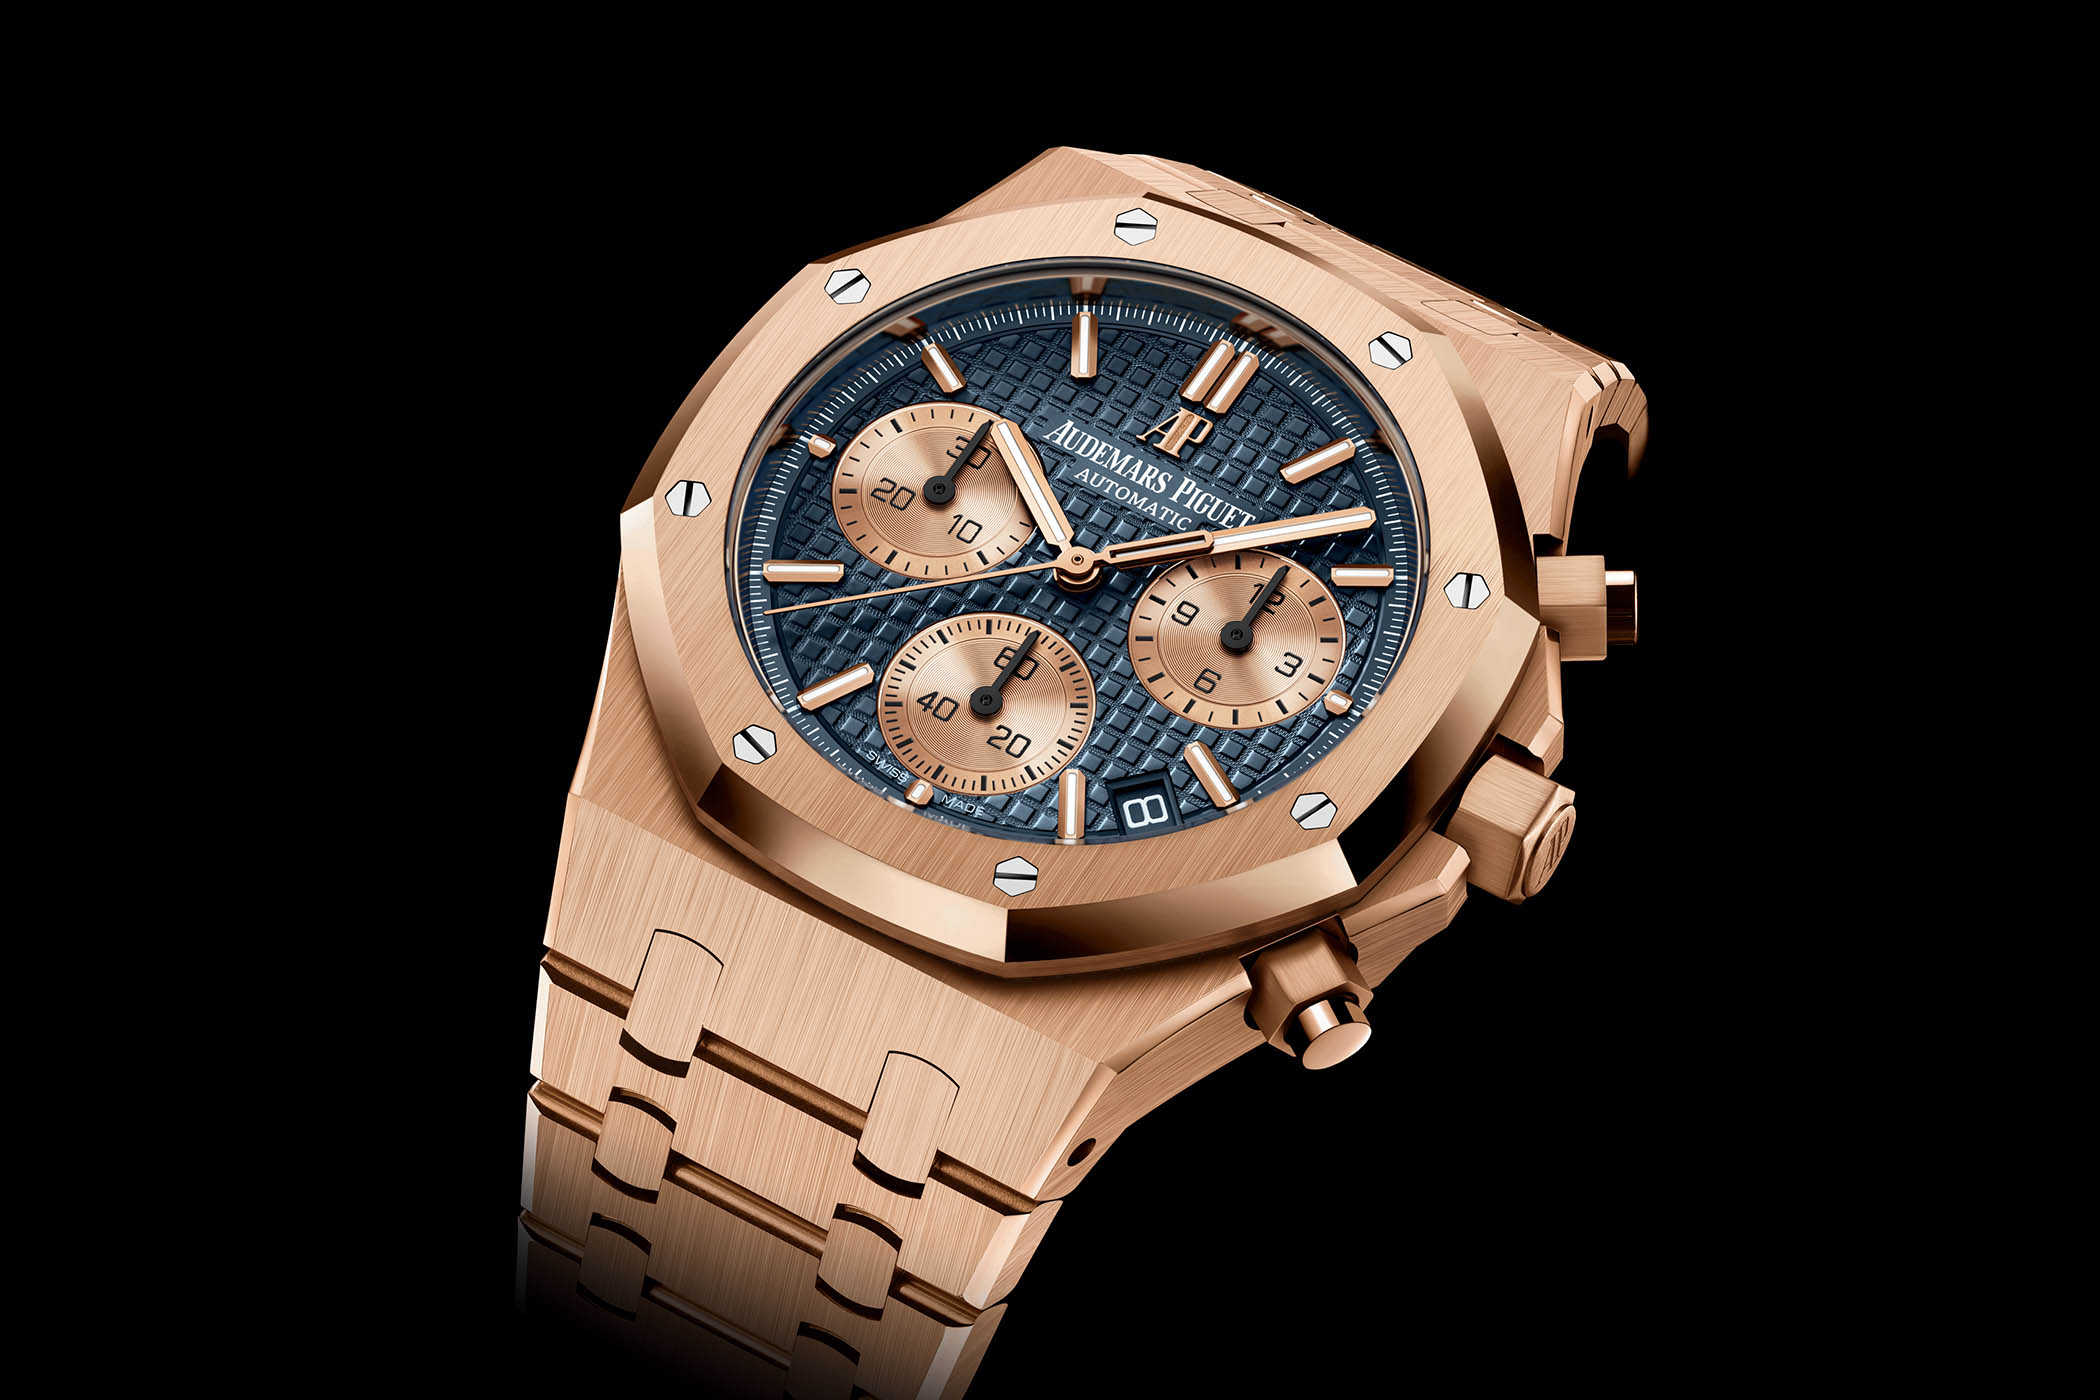 Audemars Piguet Royal Oak Selfwinding Chronograph 41mm Calibre 4401 - 2021 edition - 26239OR